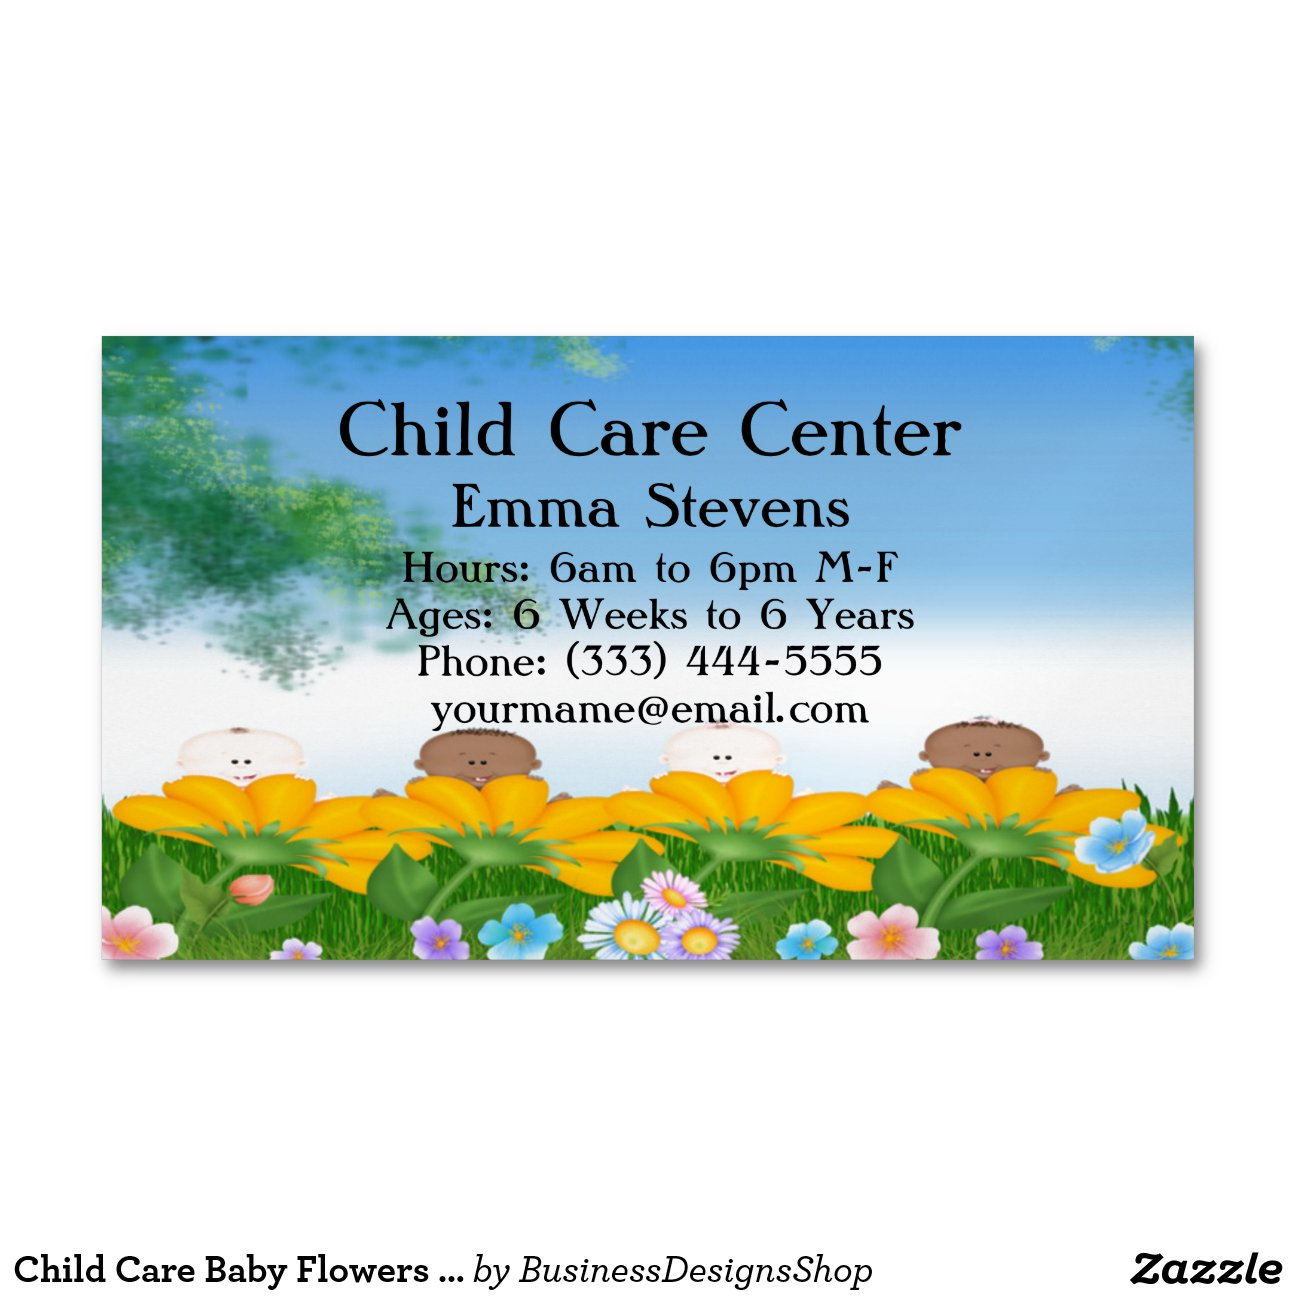 Child Care Baby Flowers Business Card Magnet Magnetic